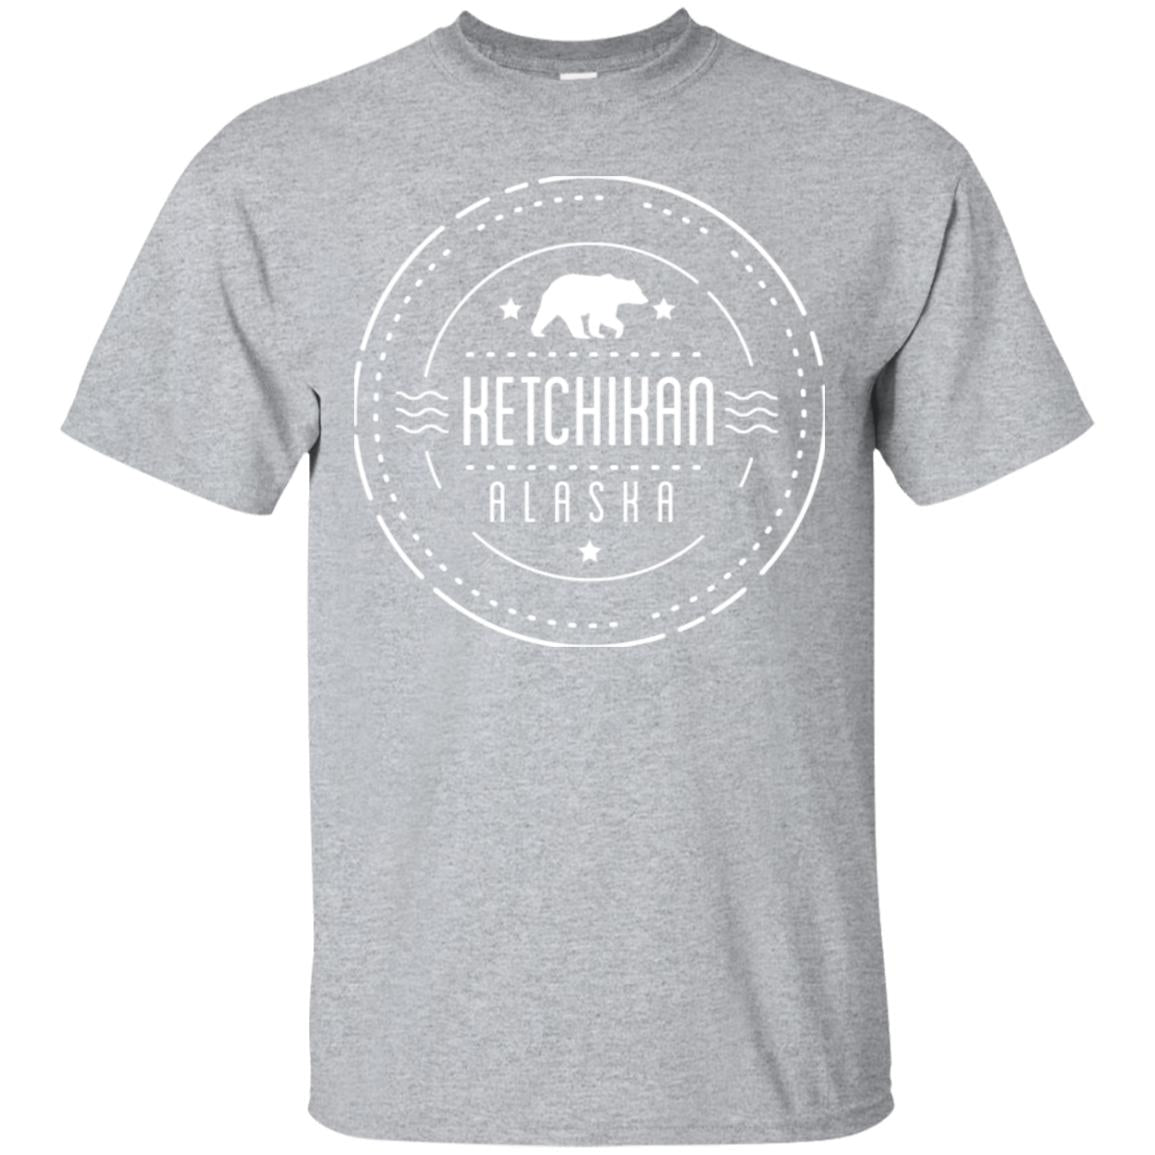 Ketchikan Alaska Shirt with Bear Long Sleeve Shirt 99promocode